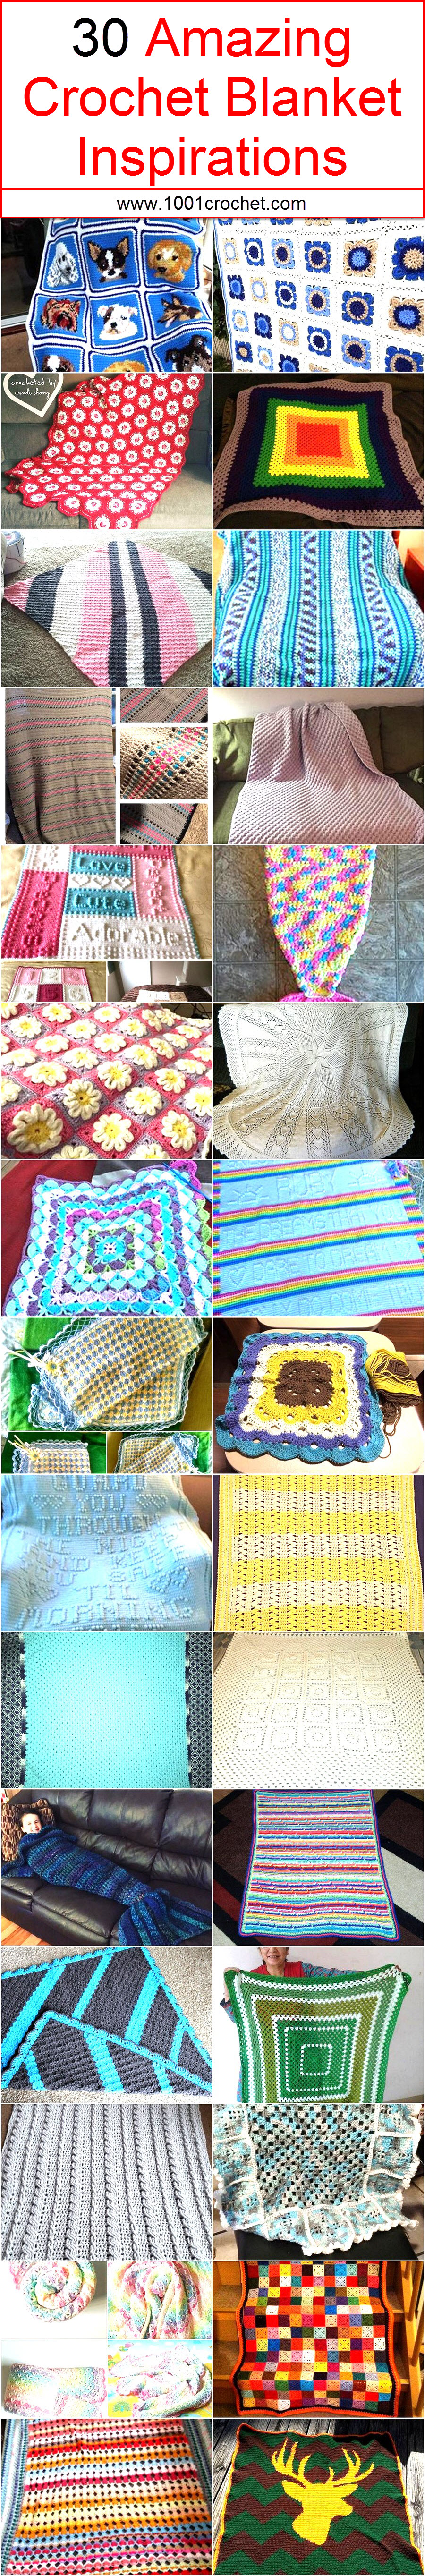 30-amazing-crochet-blanket-inspirations